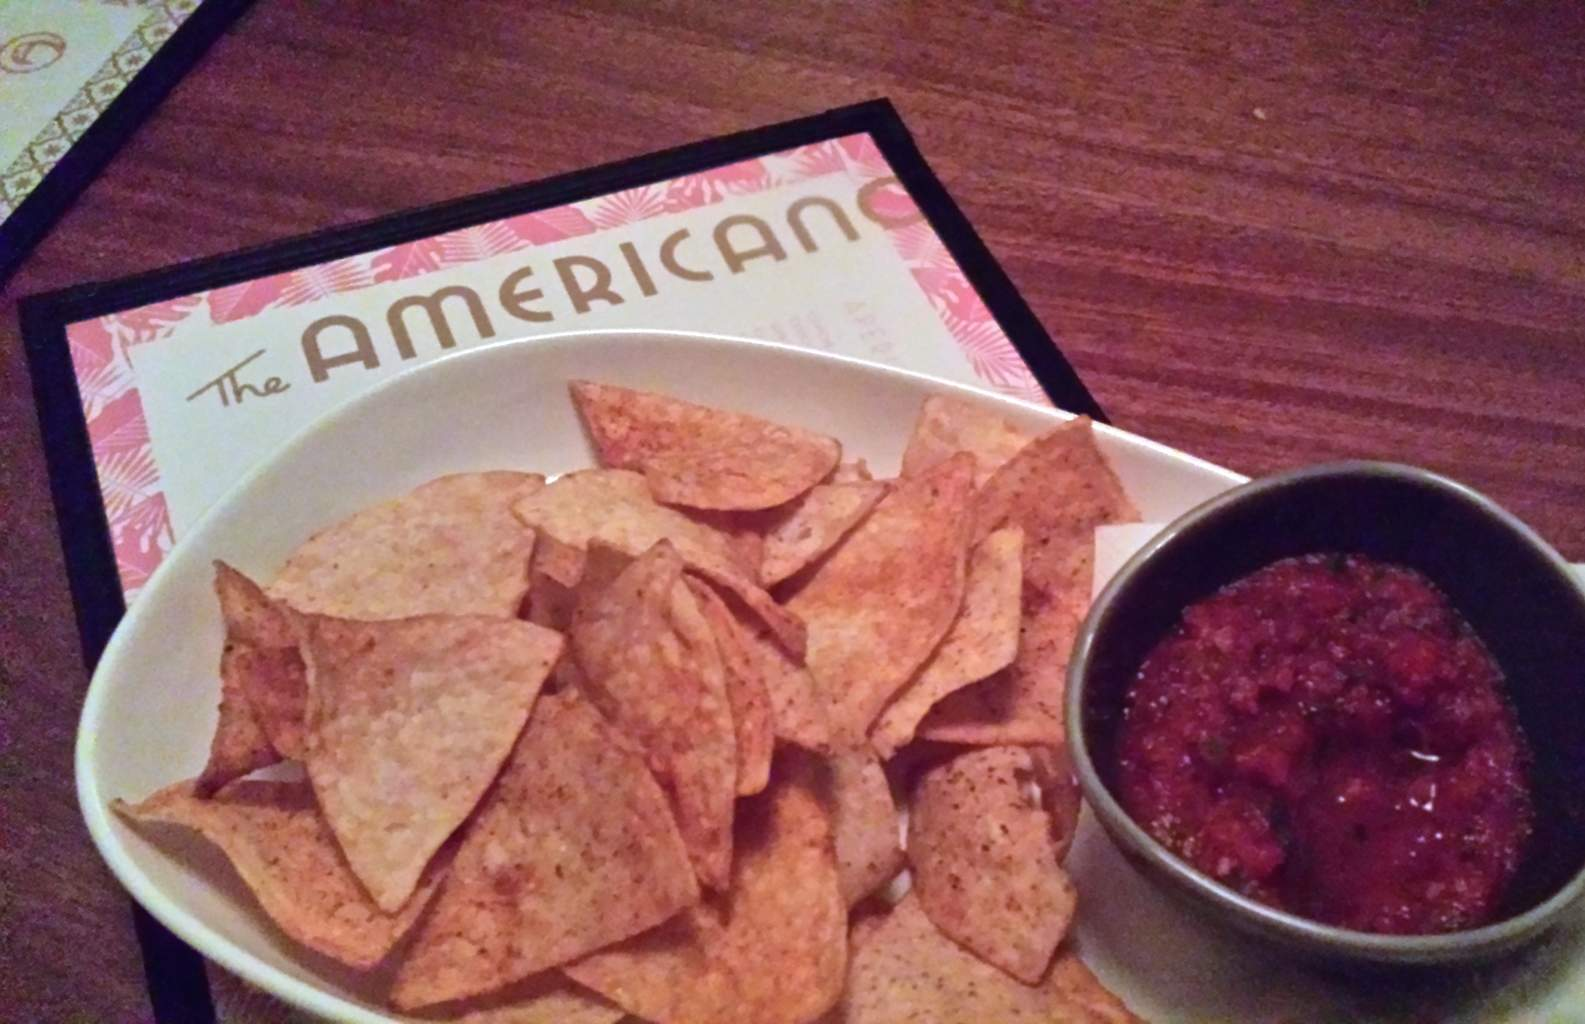 Chips and Salsa at The Americano